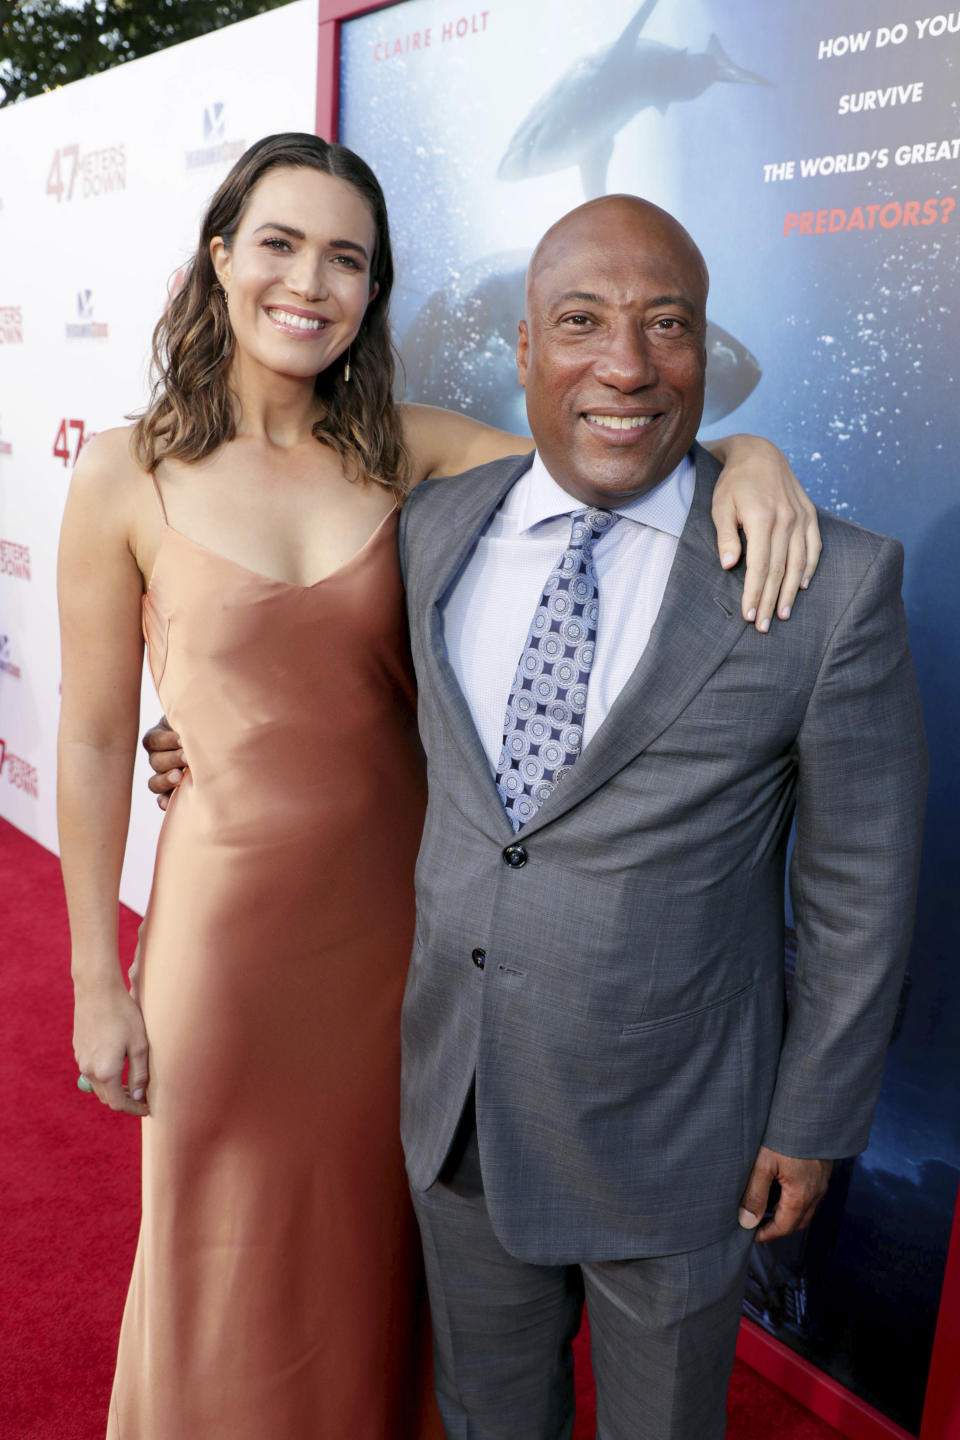 """Mandy Moore and Byron Allen, Chairman and CEO of Entertainment Studios, seen at Entertainment Studios Motion Pictures """"47 Meters Down"""" Los Angeles Premiere at Regency Village Theatre on Monday, June 12, 2017, in Los Angeles. (Photo by Eric Charbonneau/Invision for Entertainment Studios Motion Pictures/AP Images)"""